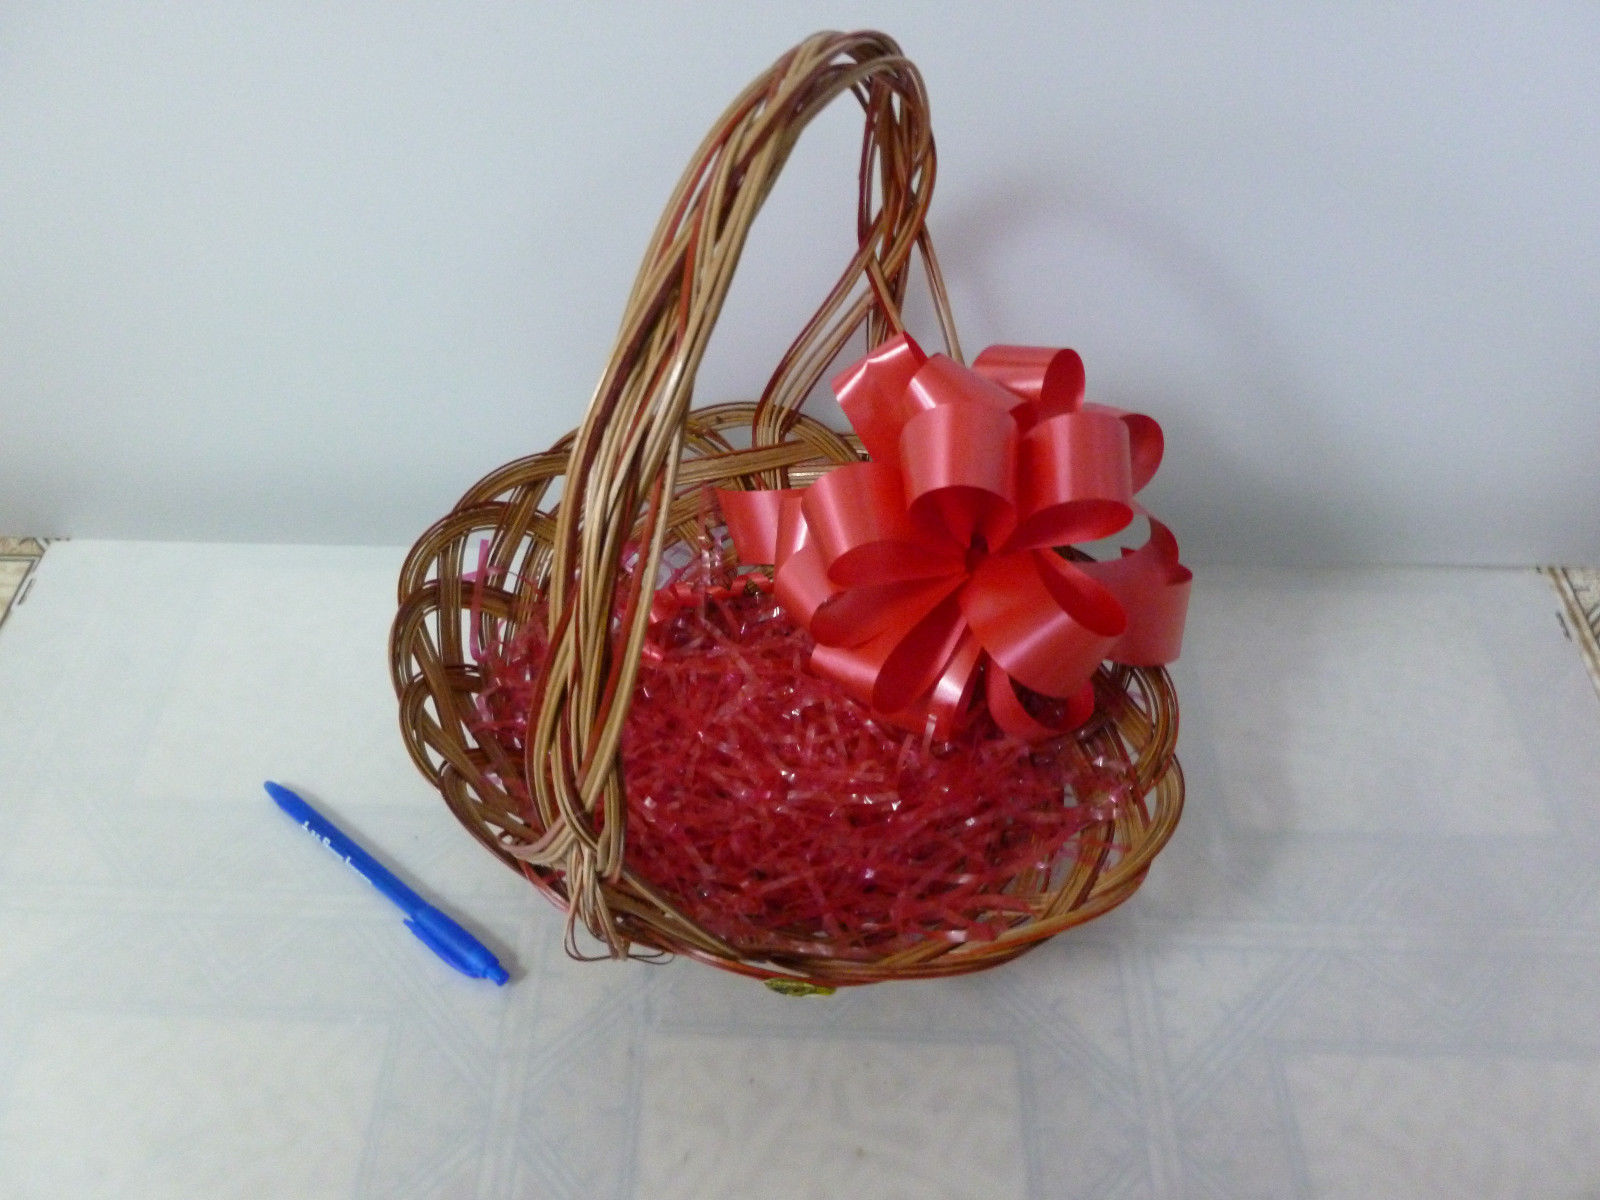 Baskets Online Empty Gift Baskets Shop Empty Gift Baskets Online